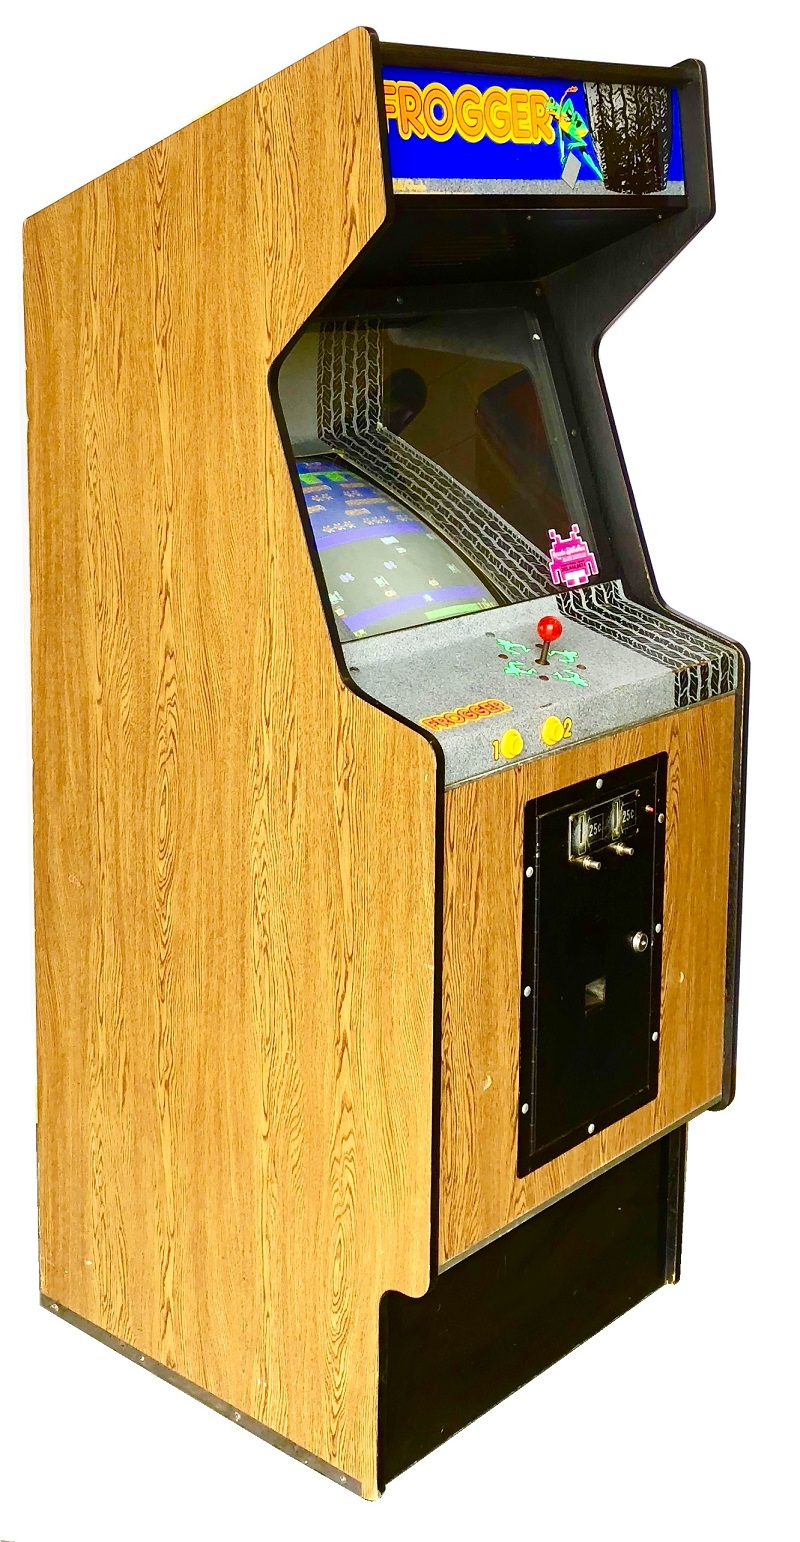 frogger-arcade-game-rental-nyc